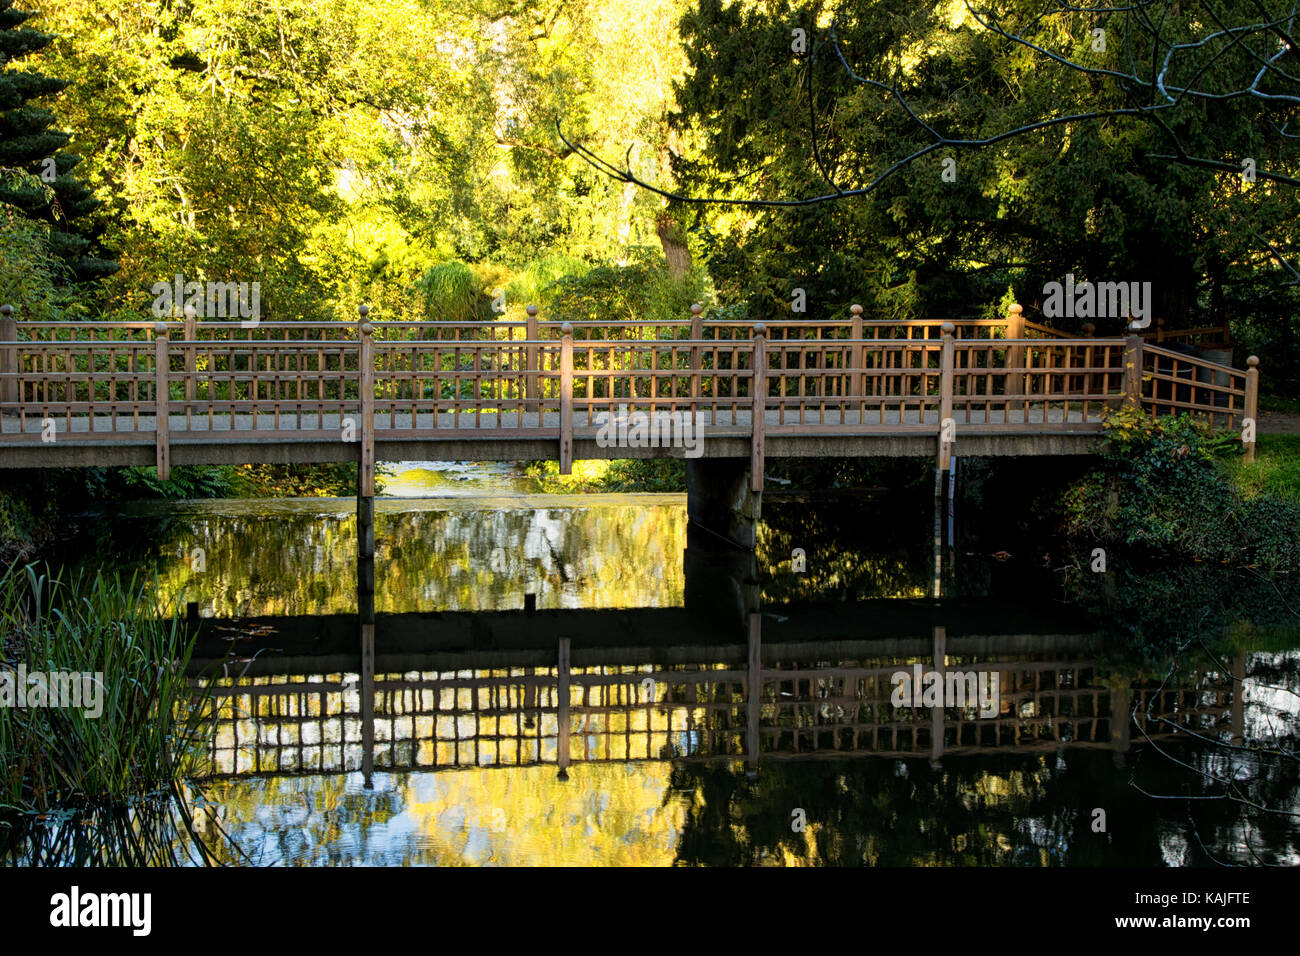 Wooden bridge over the Fish Pond in the grounds of Harewood House,Leeds,West Yorkshire,England,UK. - Stock Image